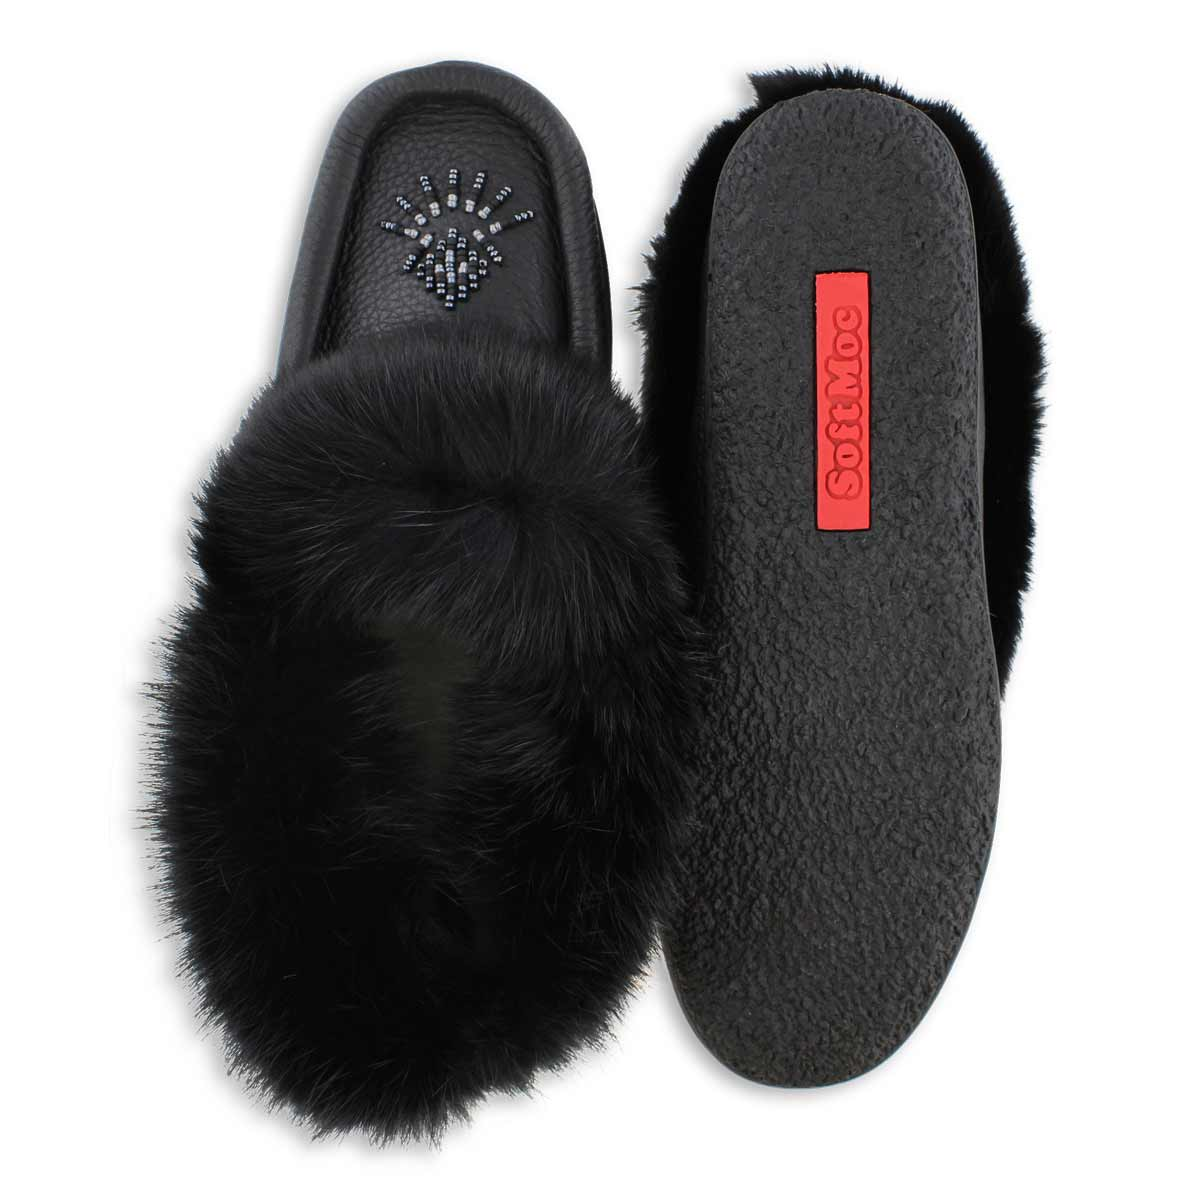 Lds Cute4 black lthr rabbit fur moccasin